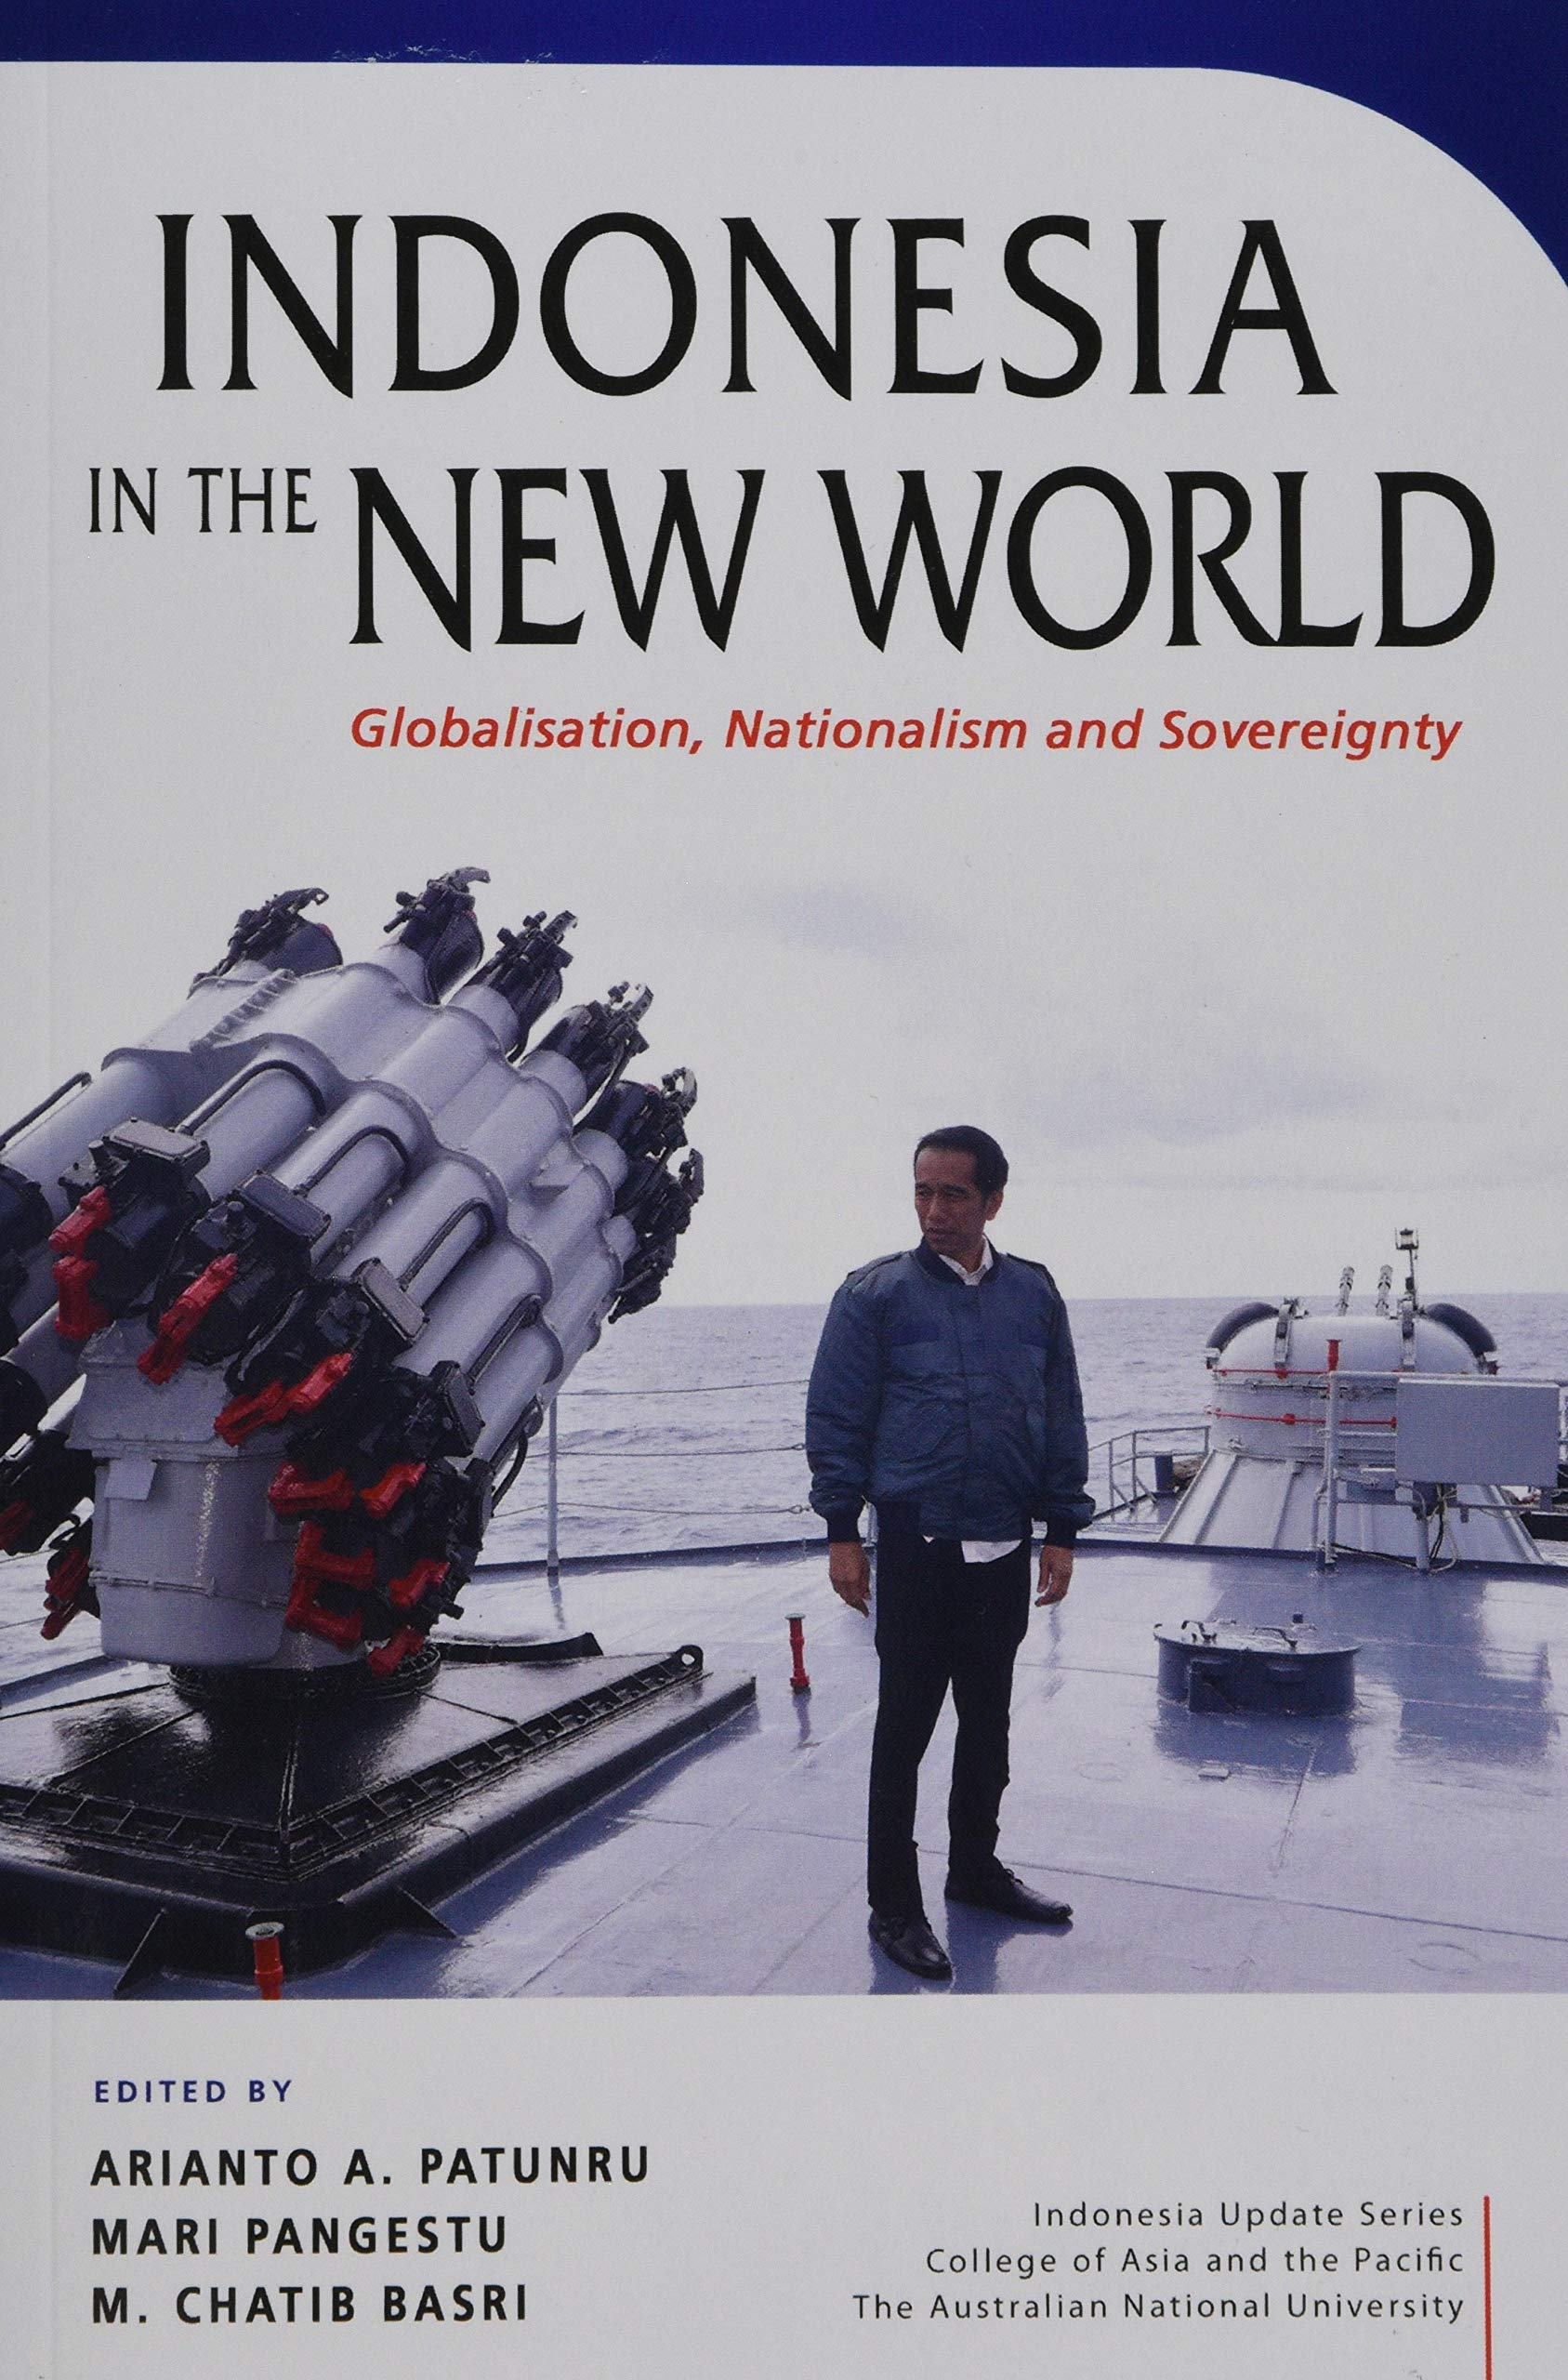 Indonesia in the New World: Globalisation, Nationalism and